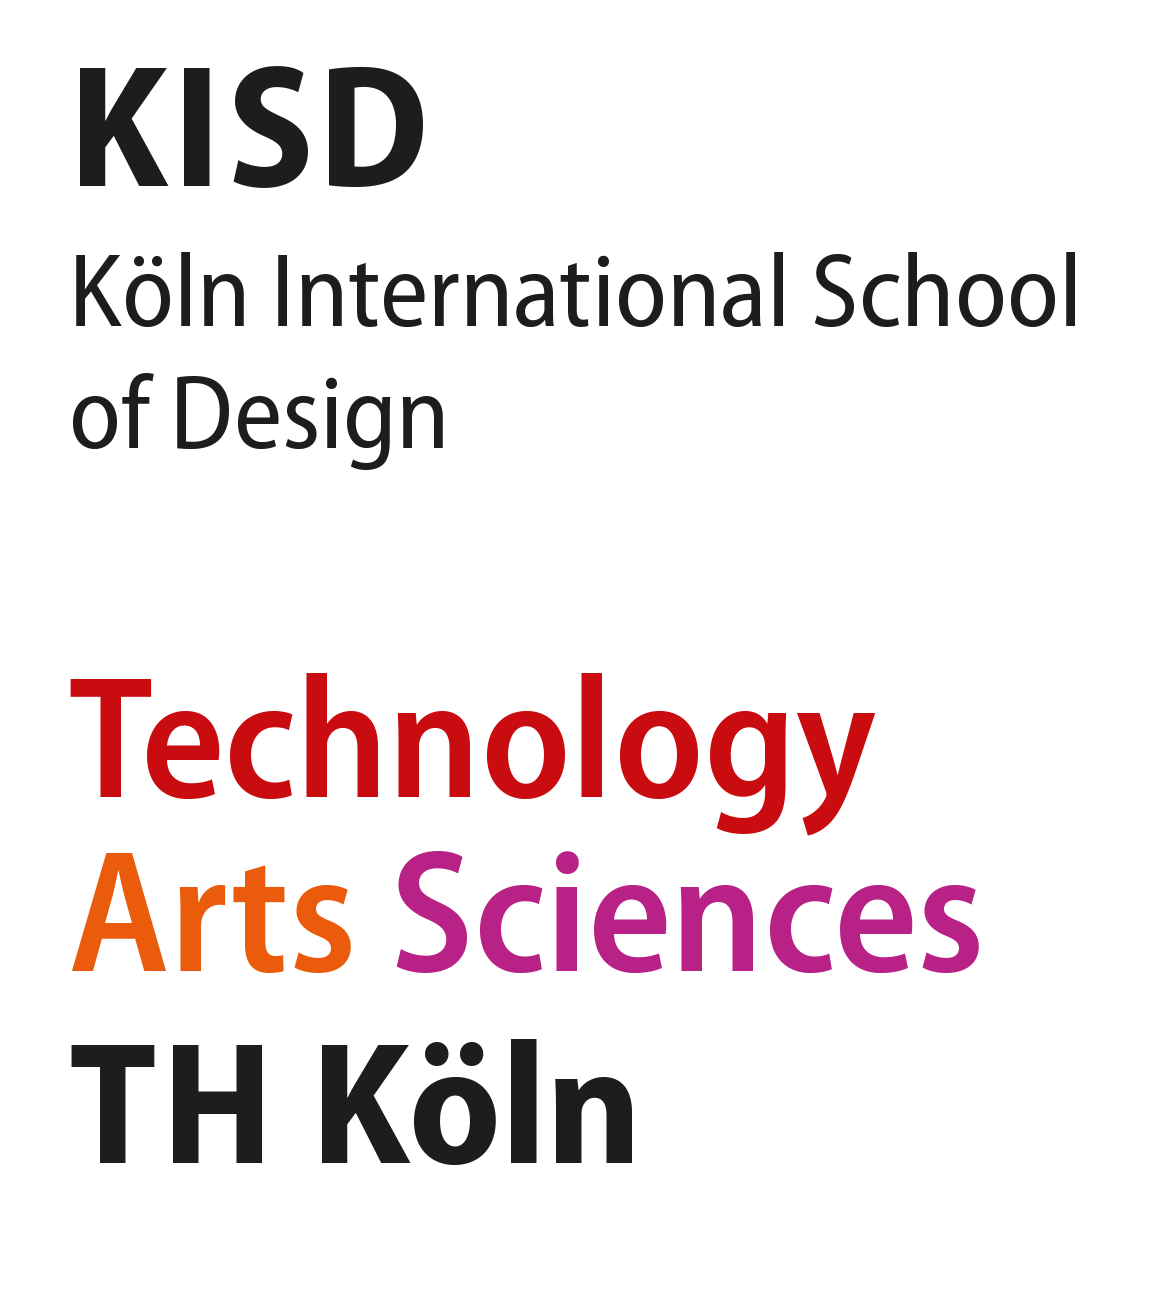 kln international school of design wikipedia - Fh Koln Bewerbung